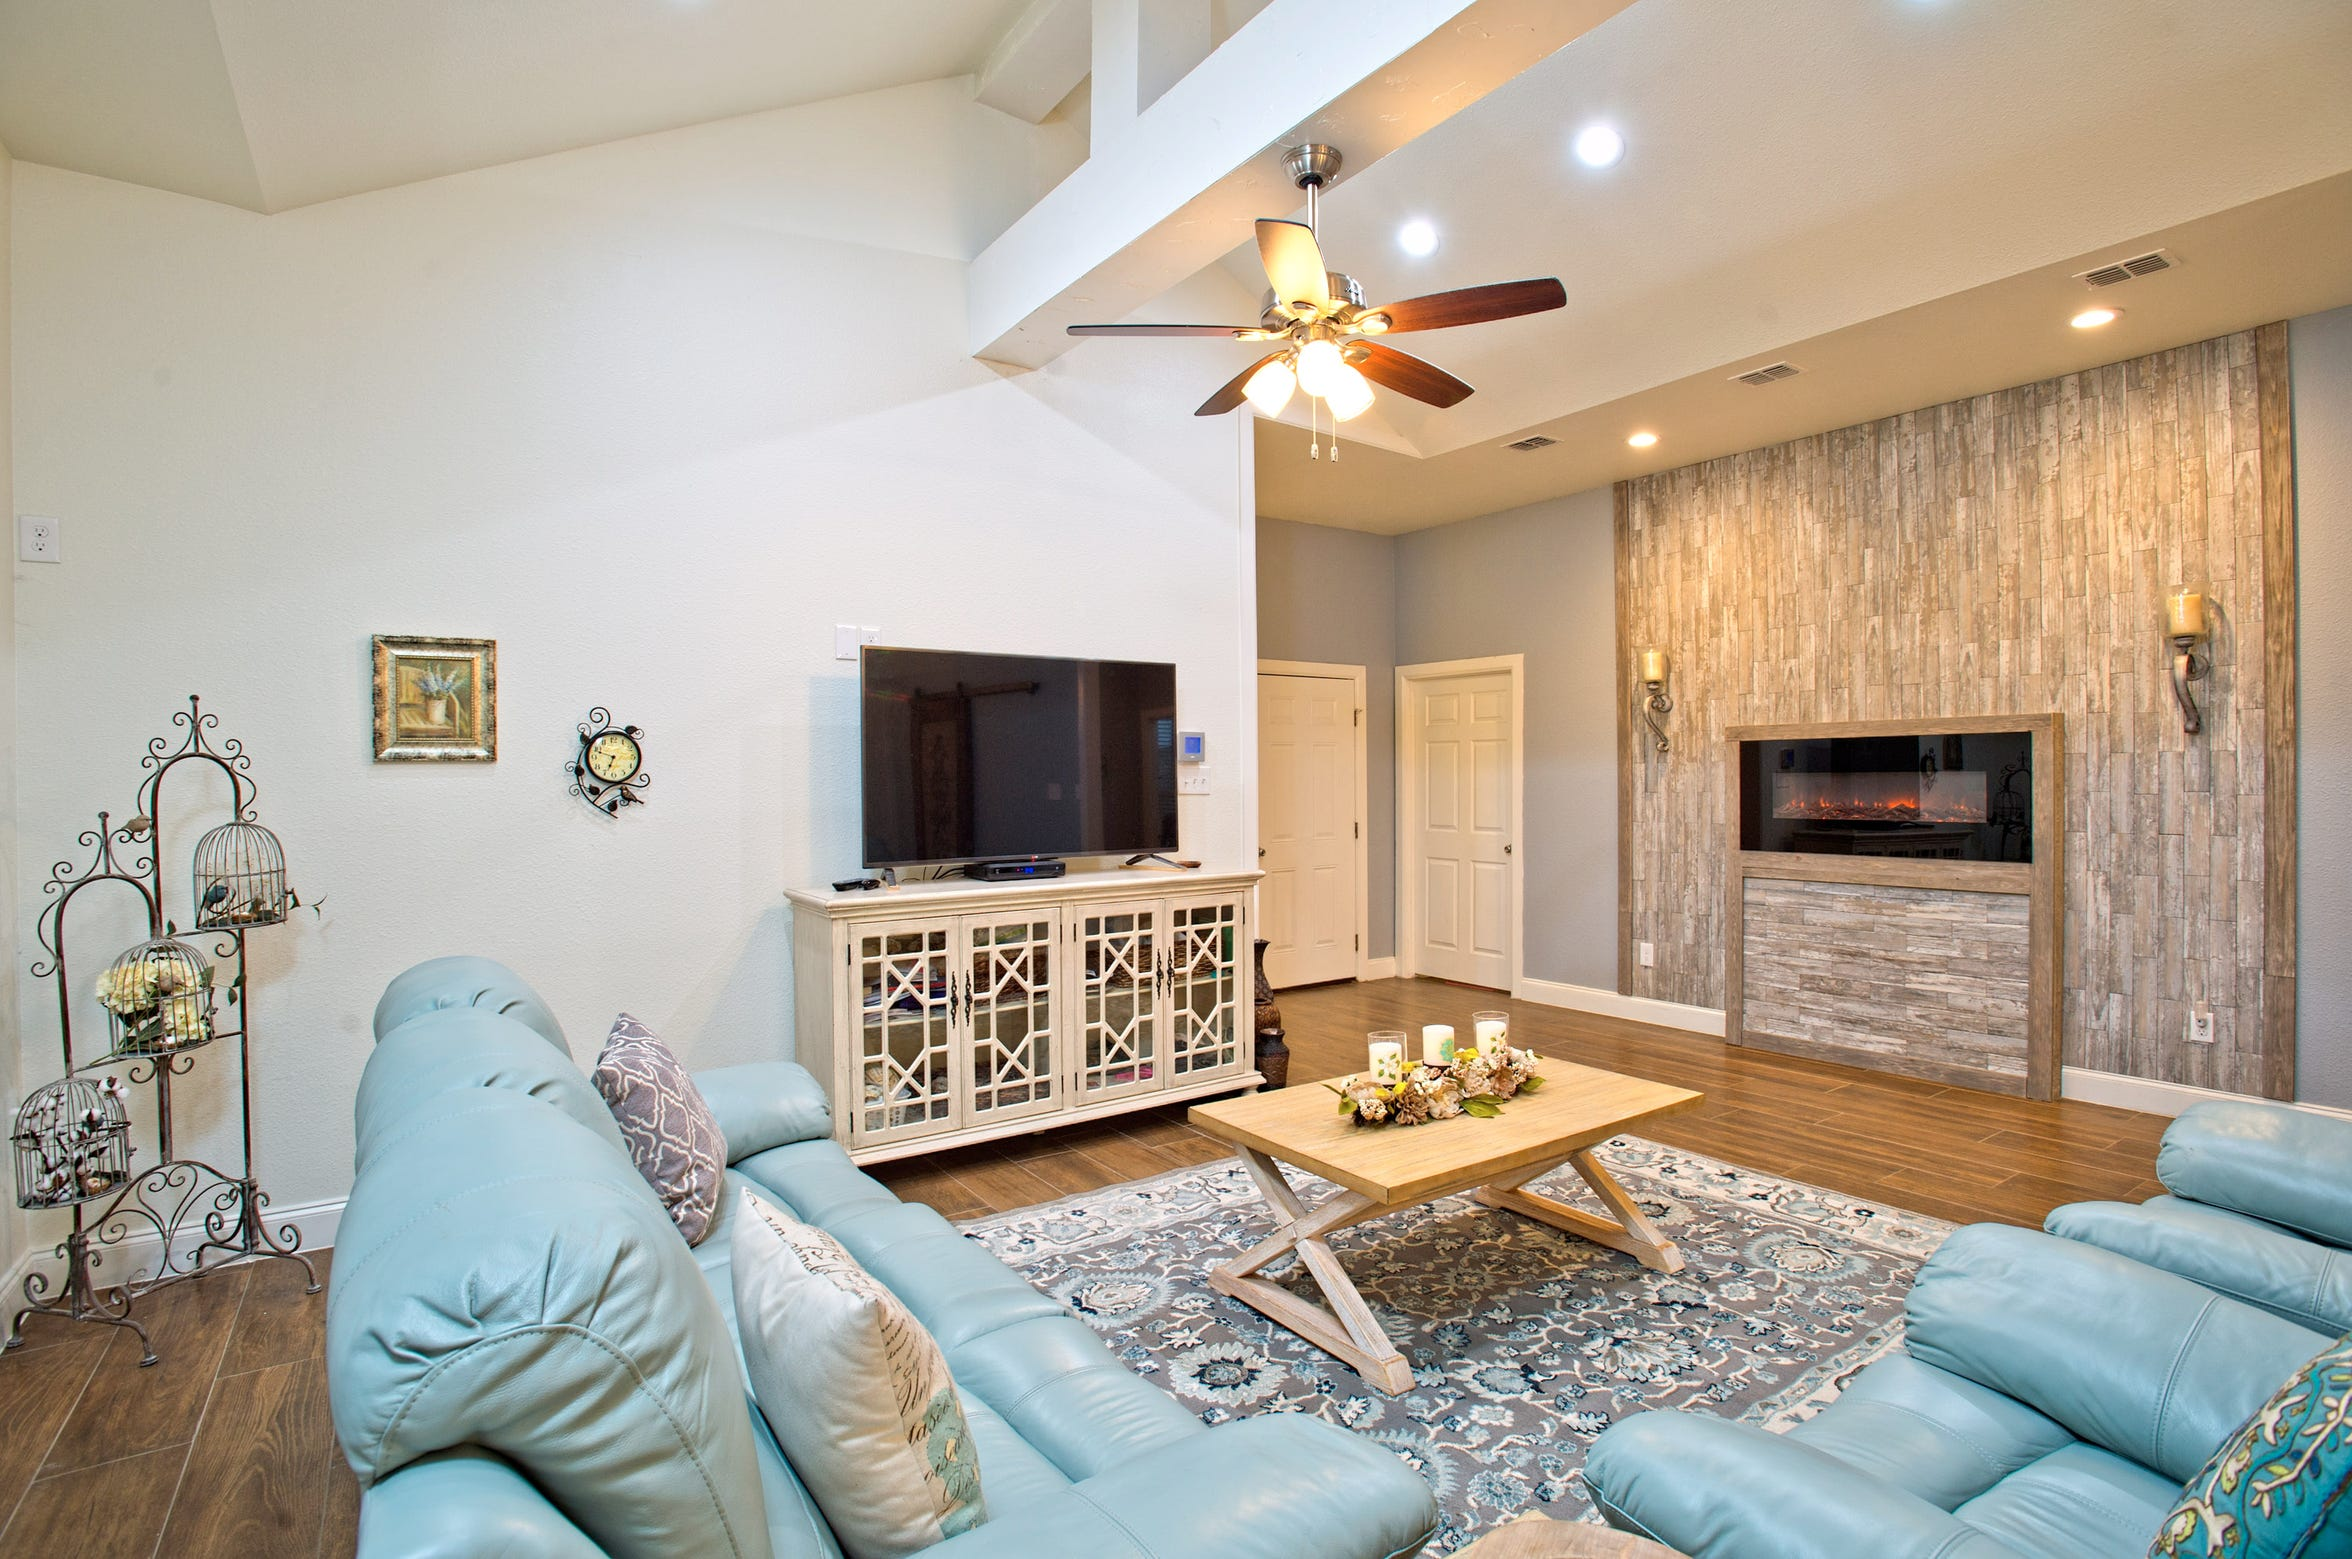 The spacious living area is highlighted by a cool fireplace wall which highlights the electric fireplace beautifully and a unique cathedral ceiling.